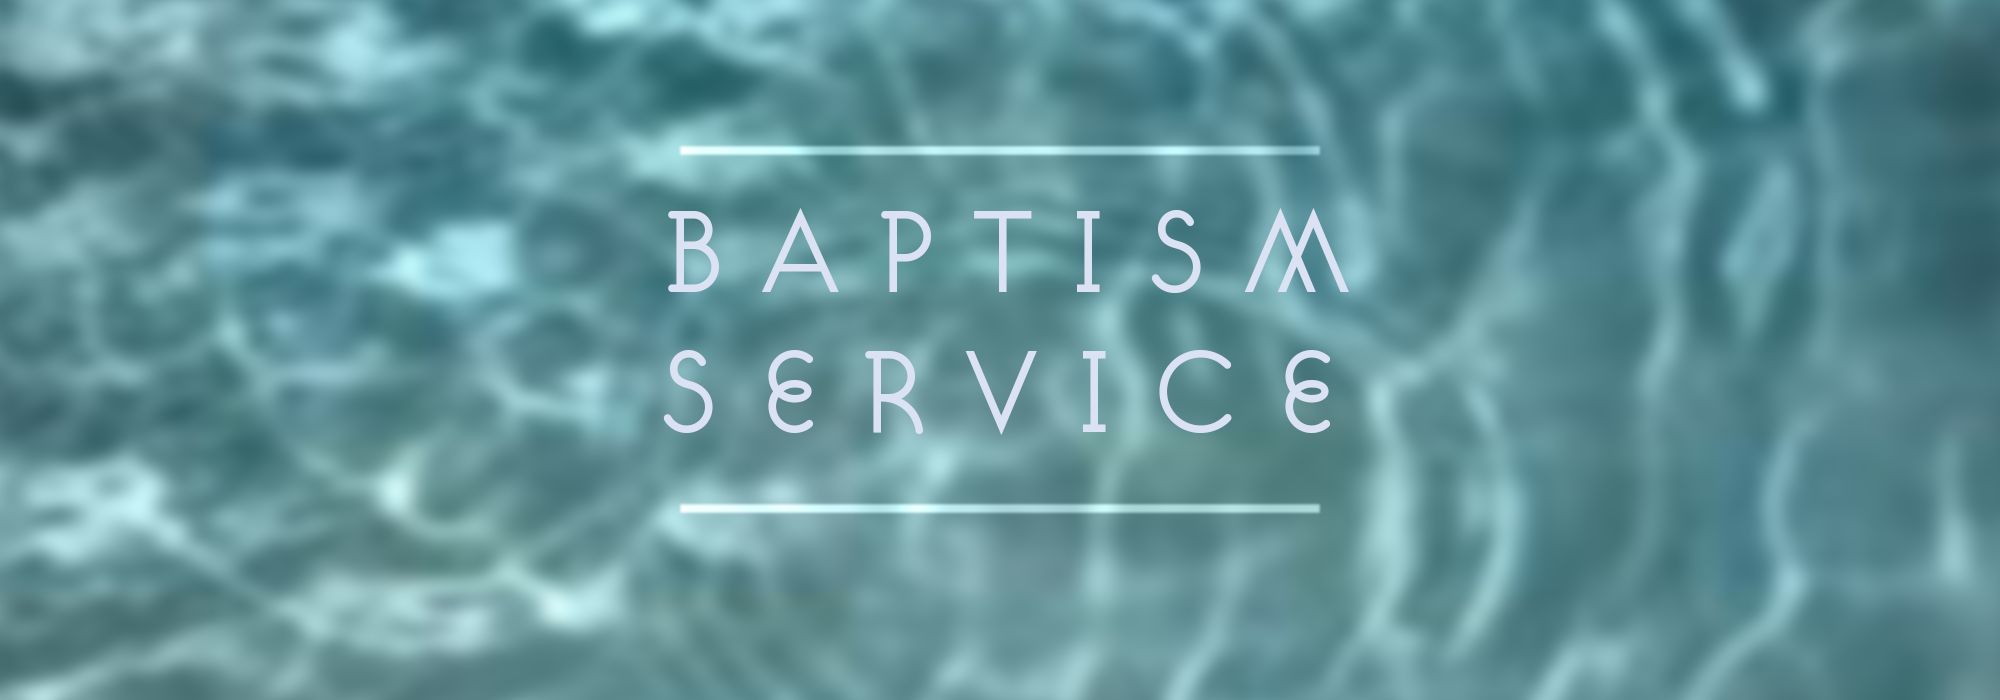 Gratitude for Grace (Luke 17:11-19) and Baptism Testimonies (Fall 2017)